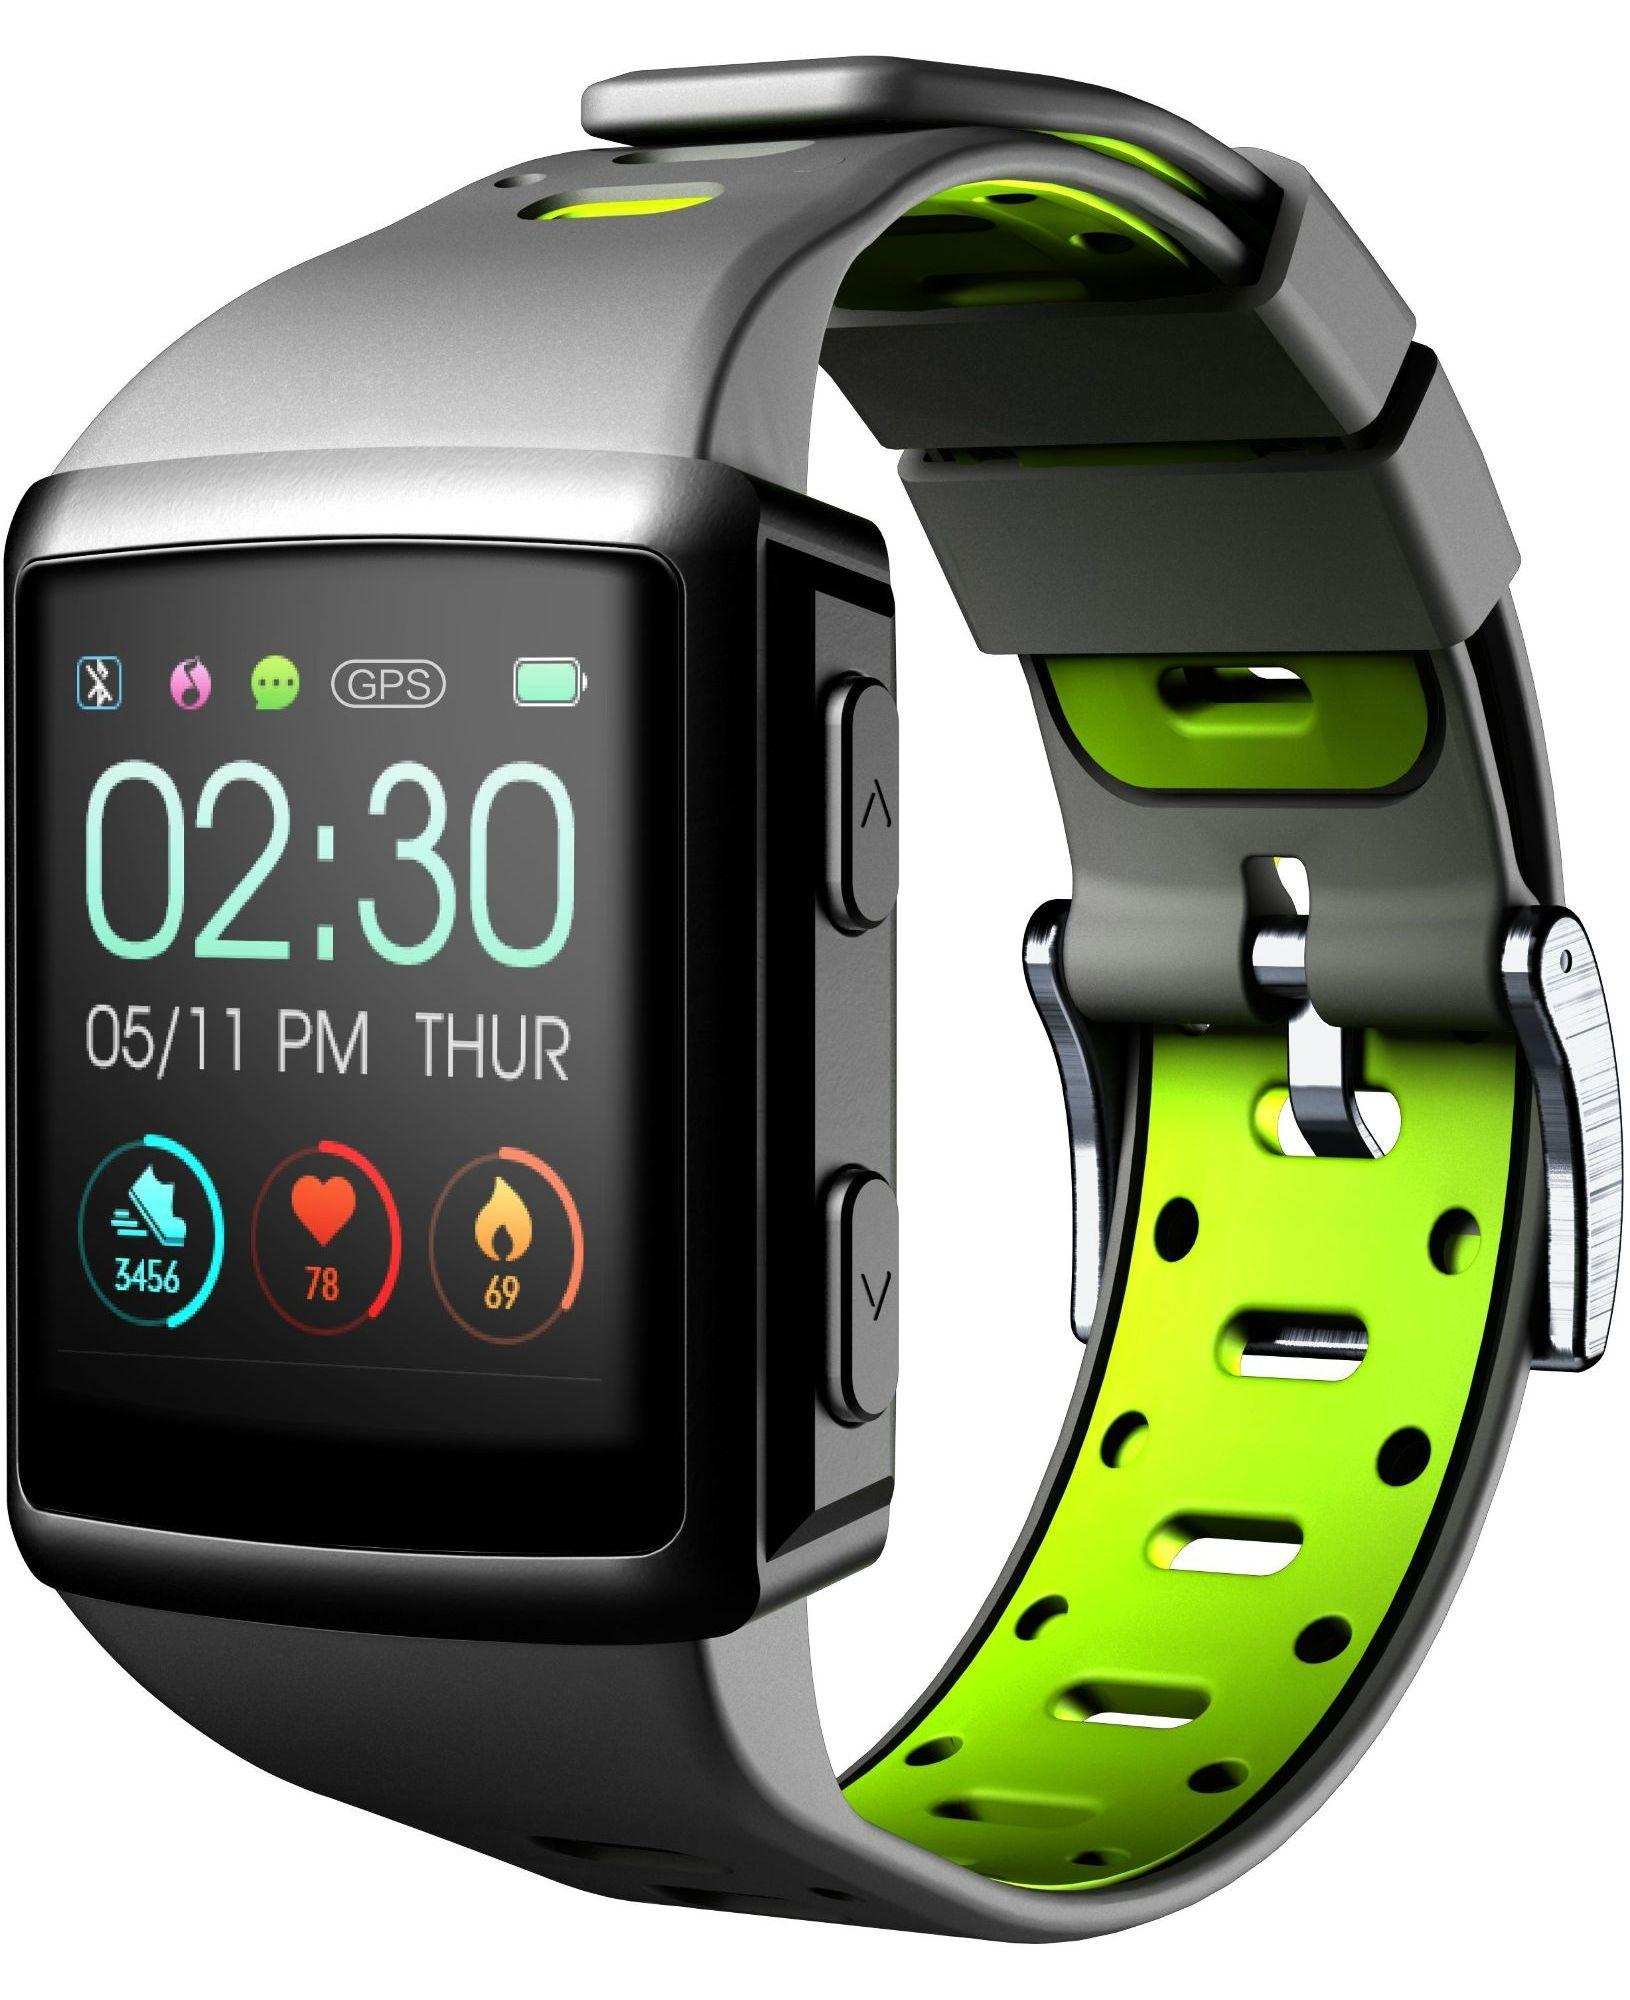 Easysport GPS montre intelligente Noir GPS (satellite)